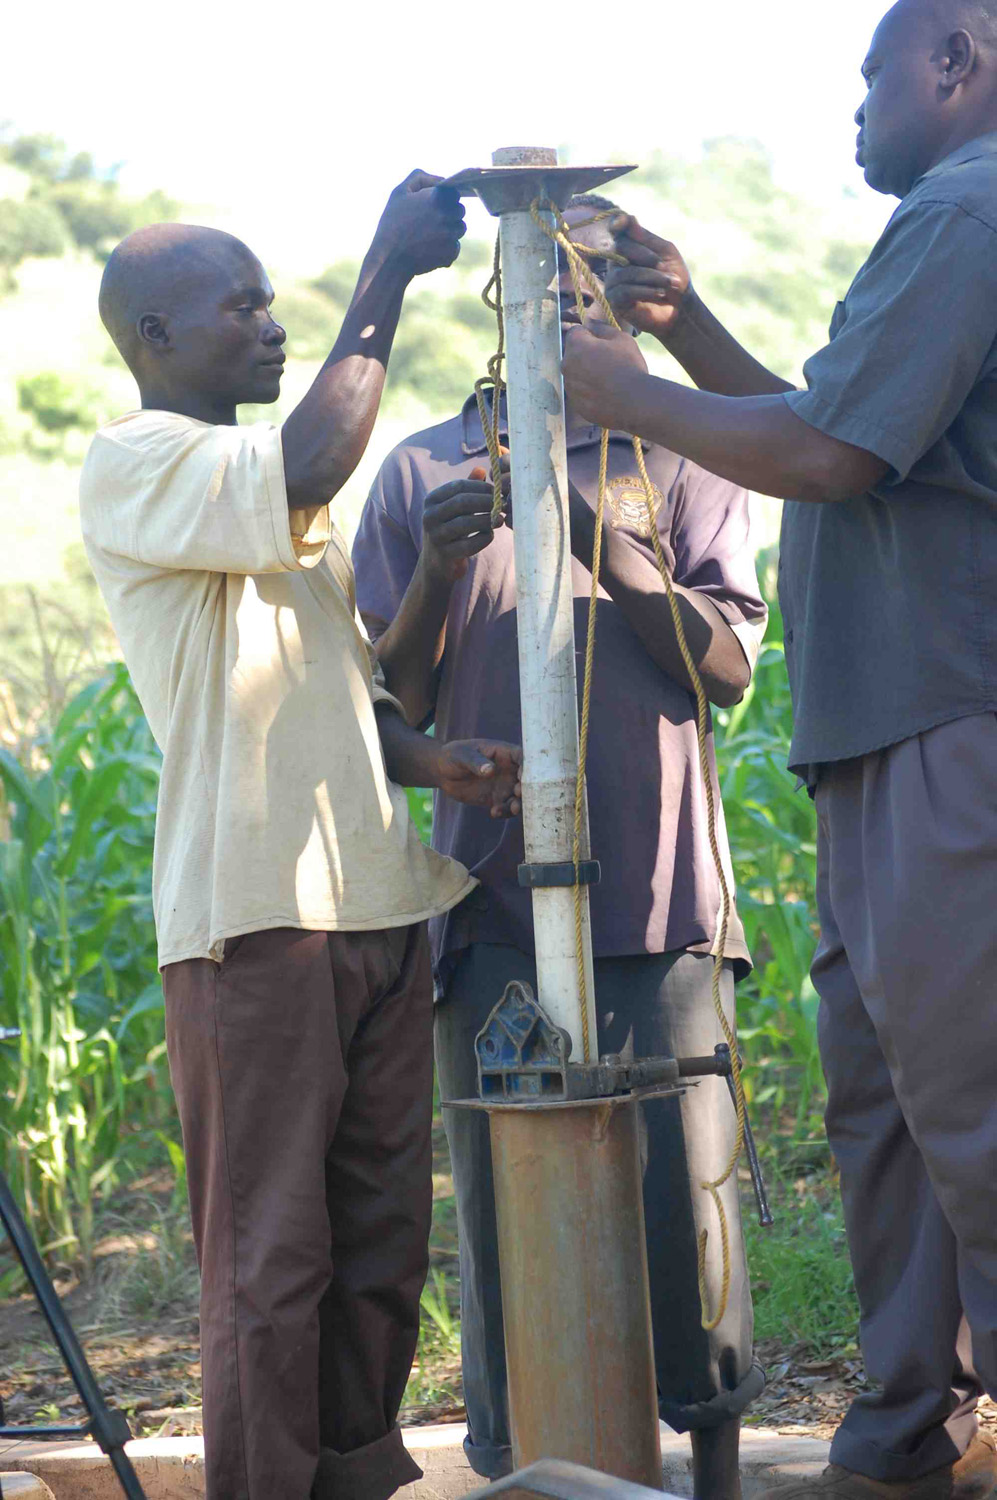 Community members taking part in fixing the borehole.